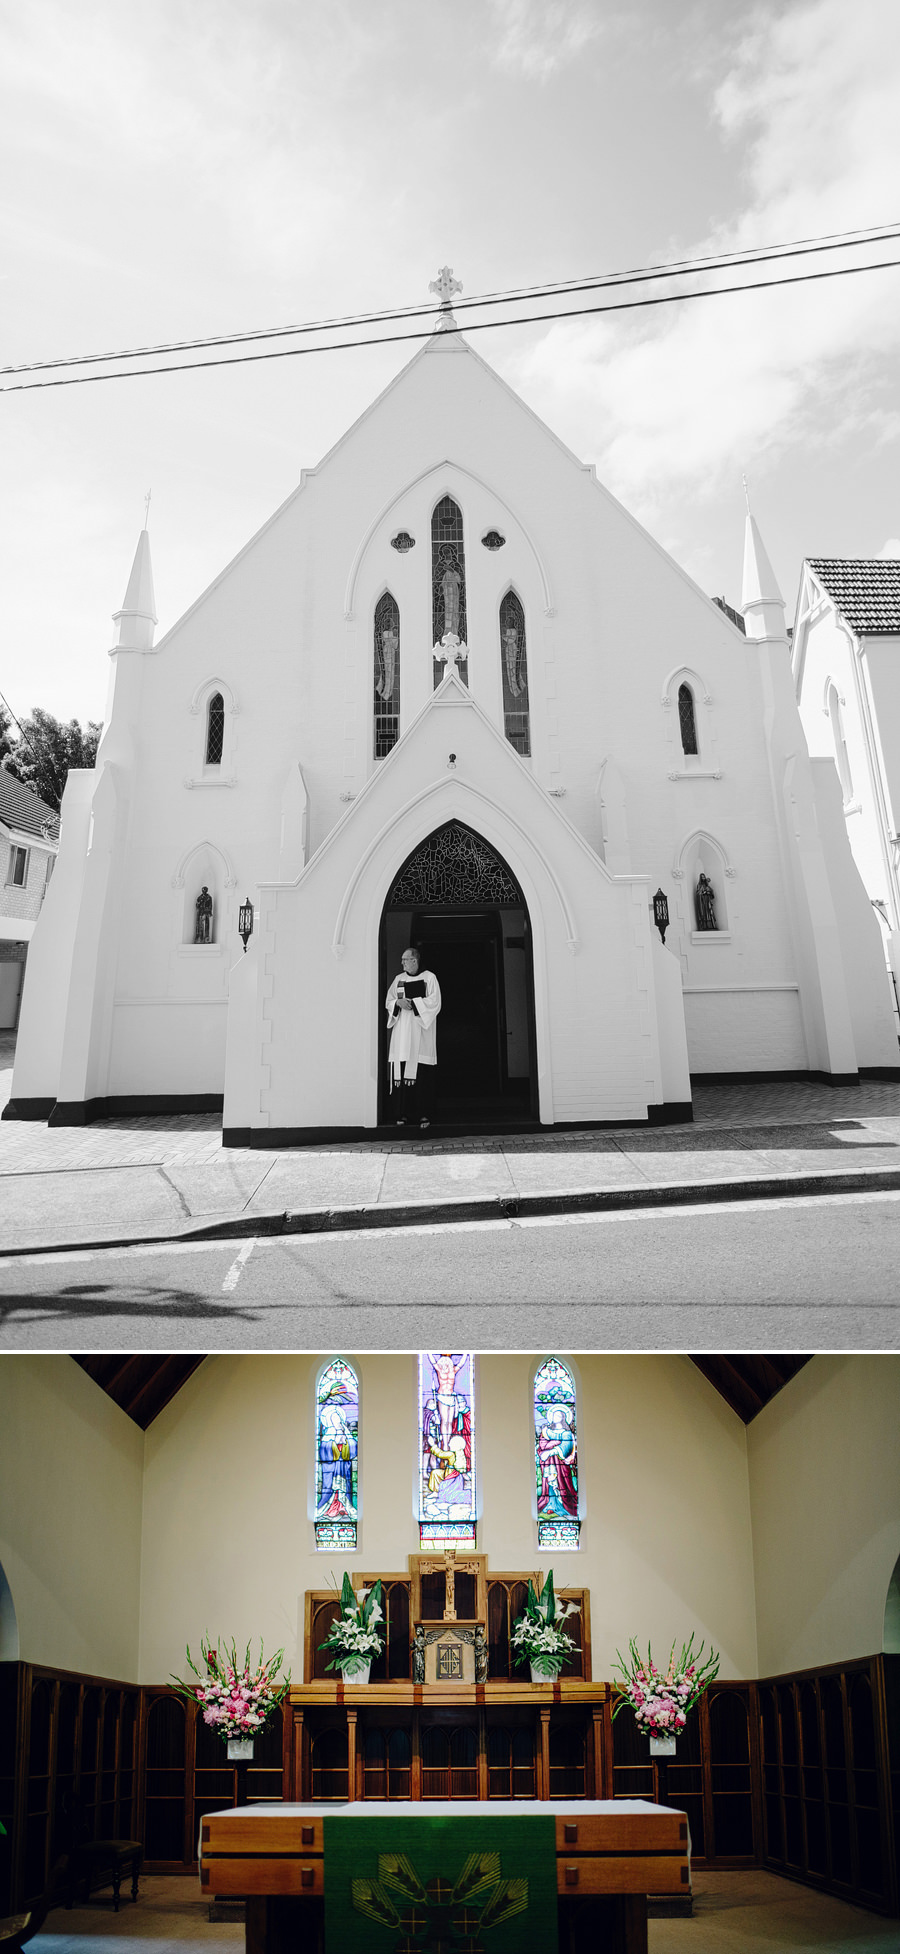 Edgecliff Wedding Photographer: Church details